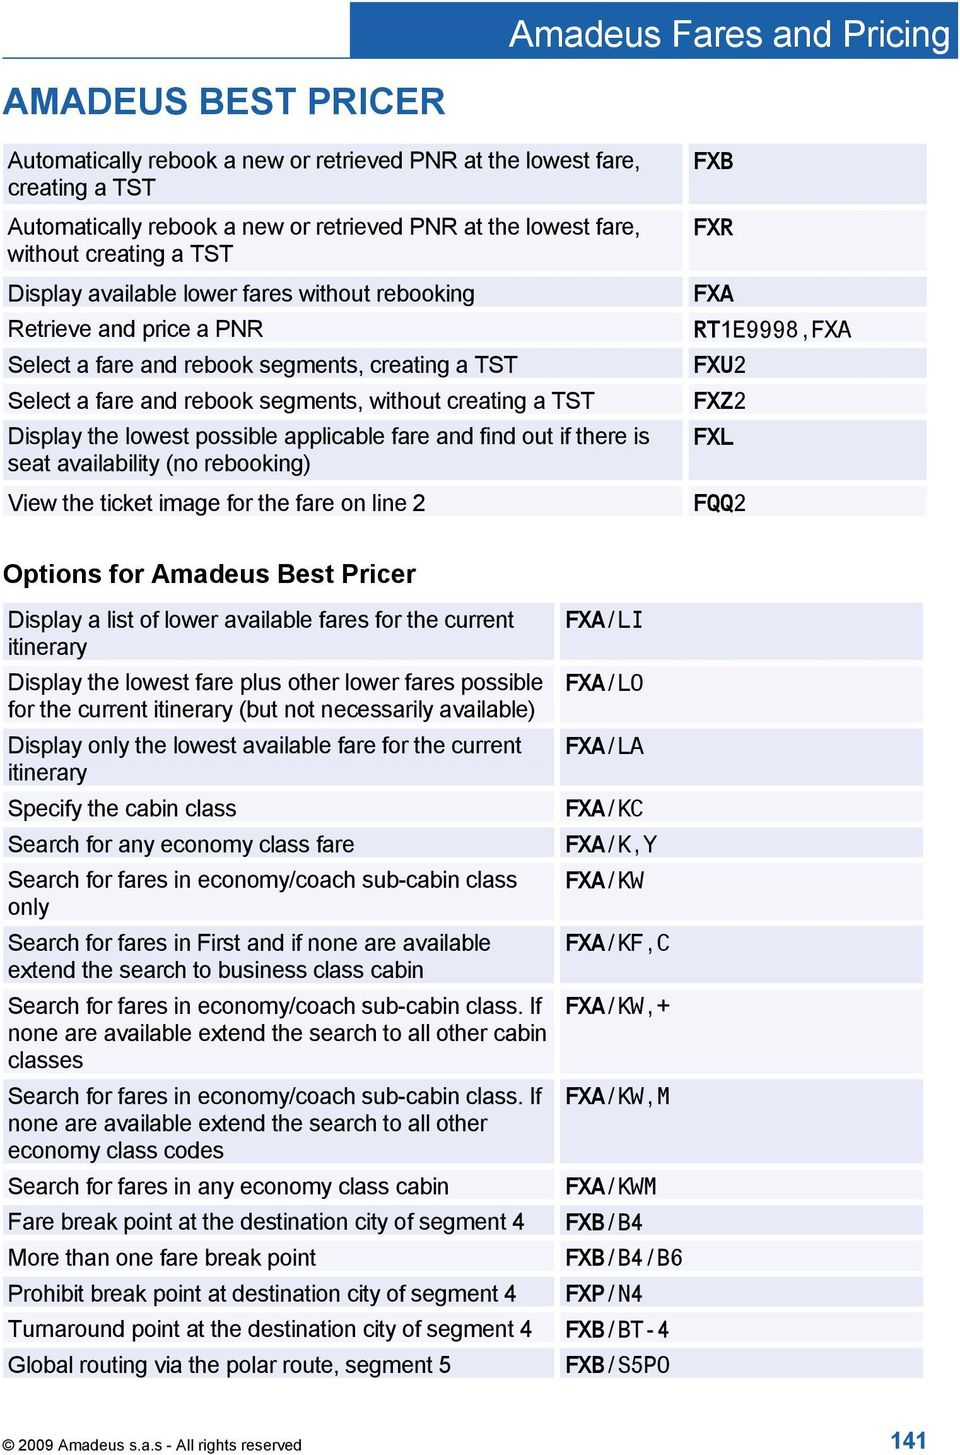 amadeus fares and pricing pdf rh docplayer net